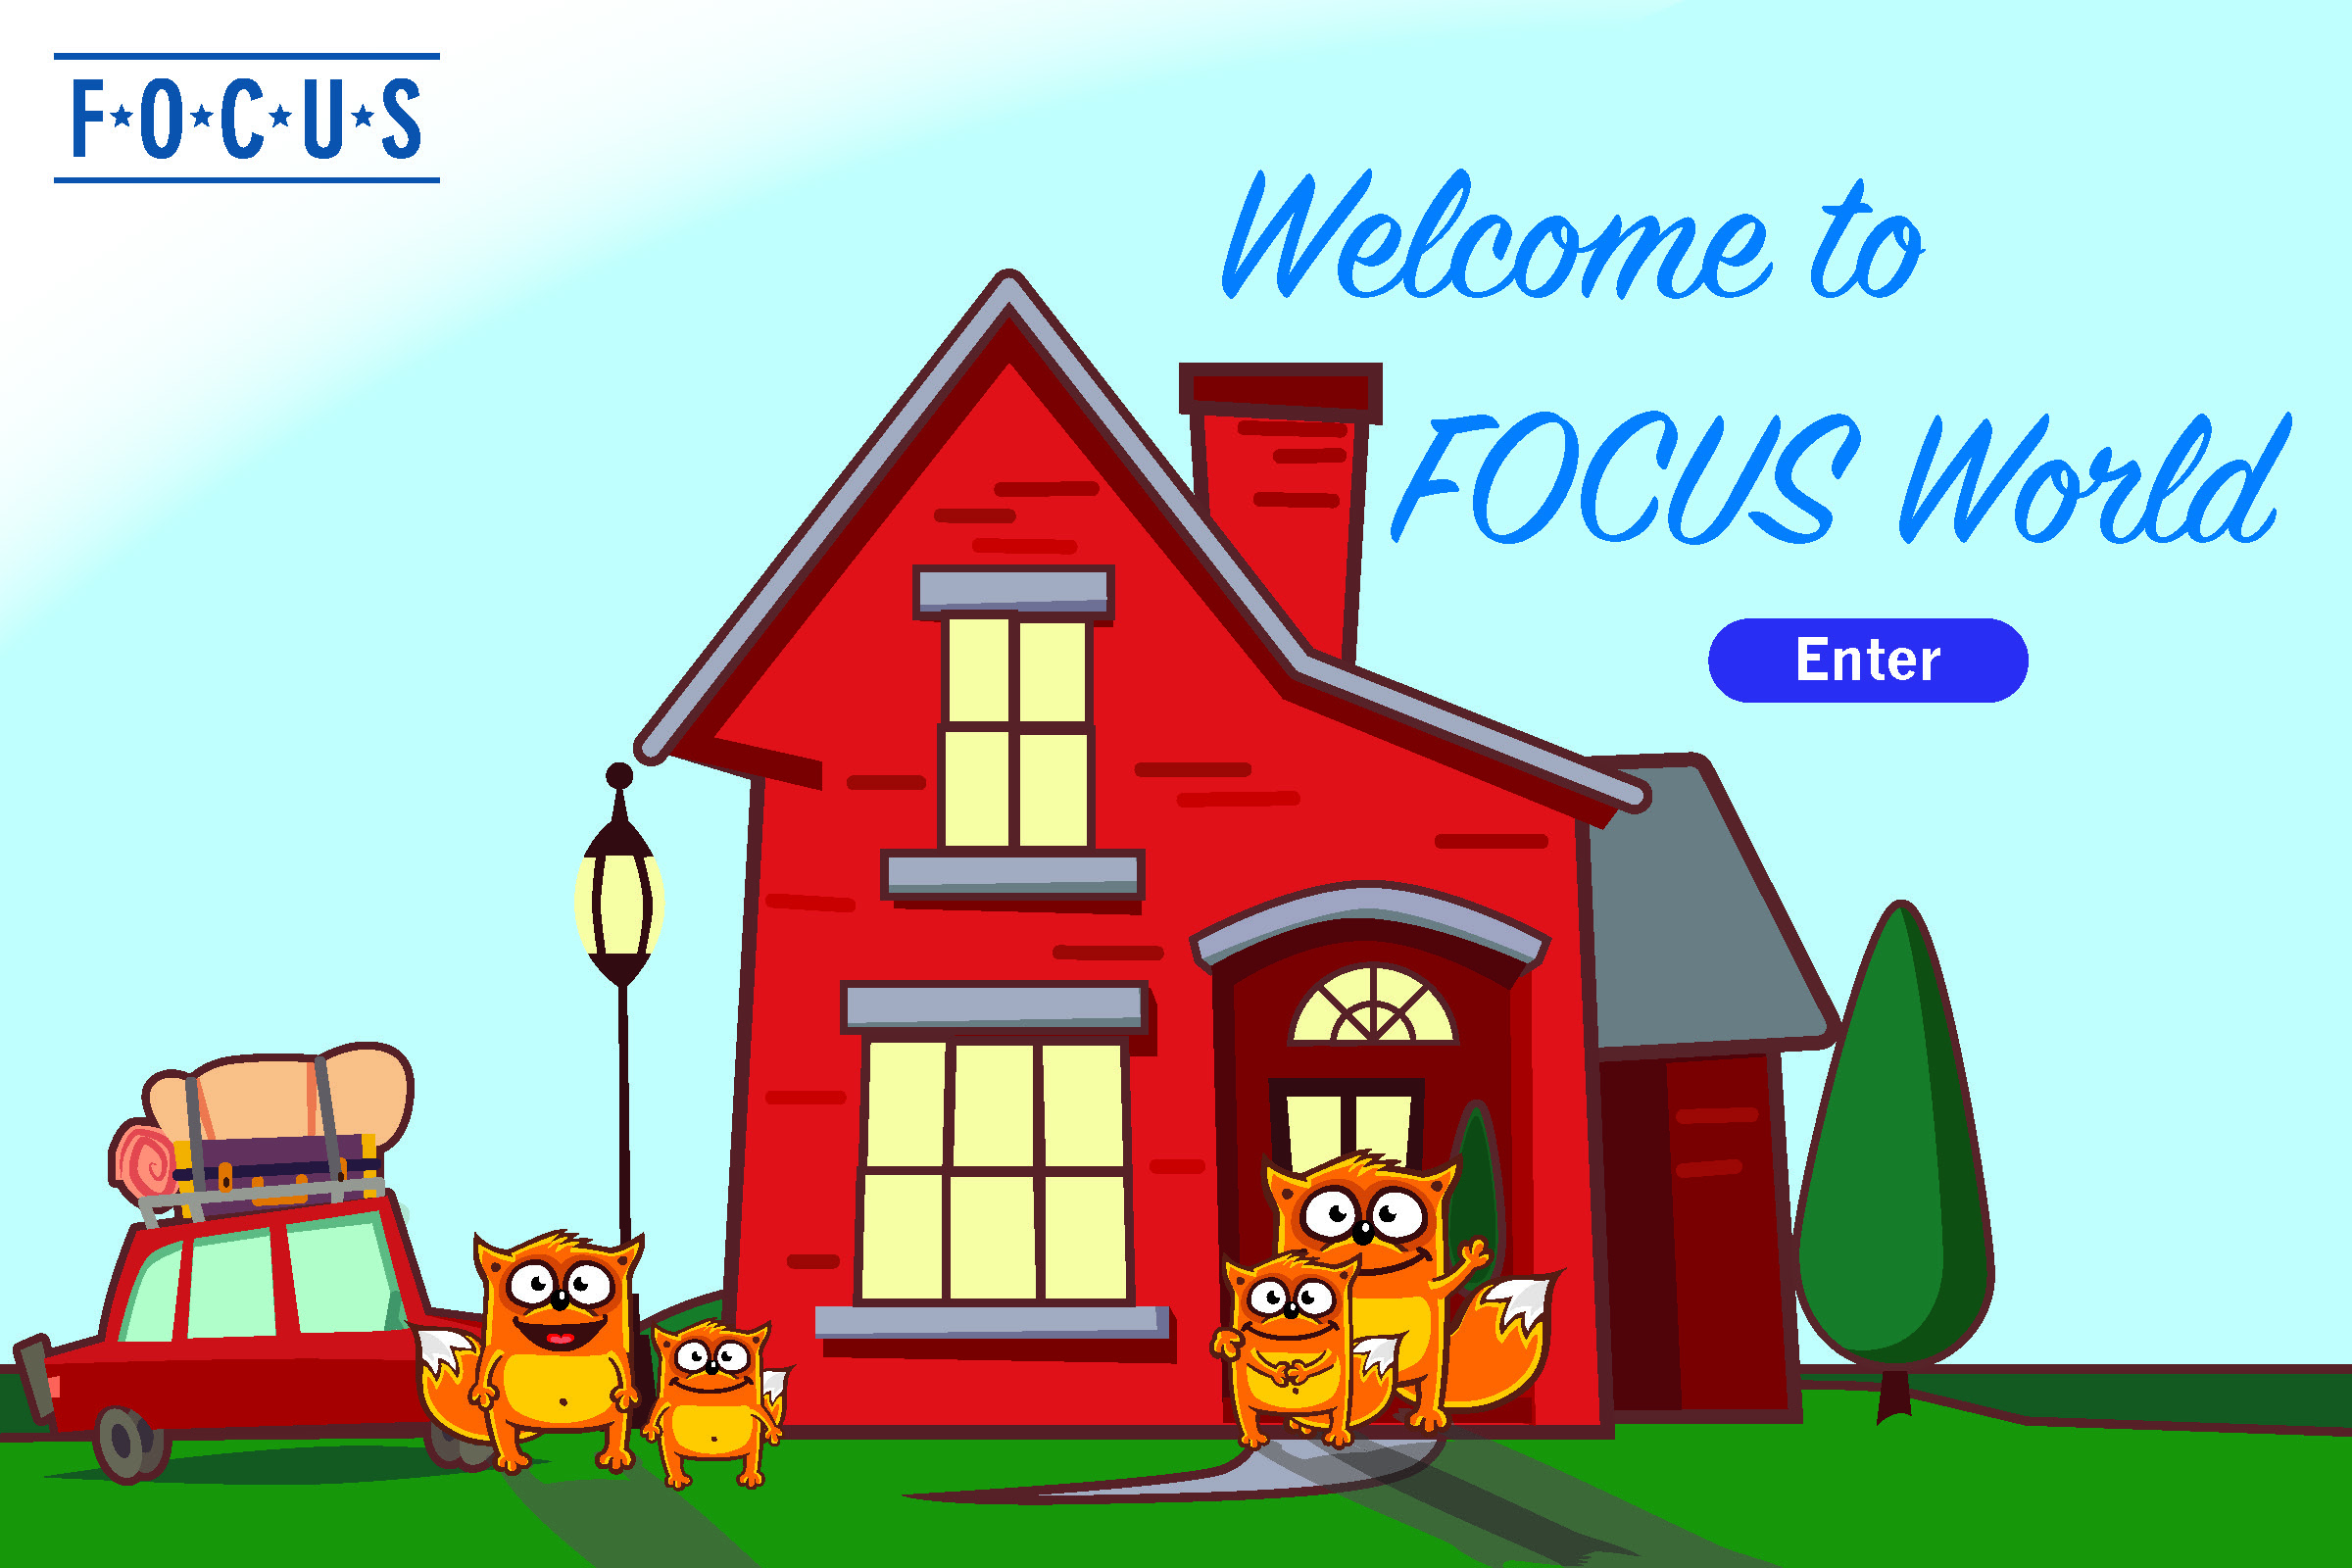 Welcome to Focus World